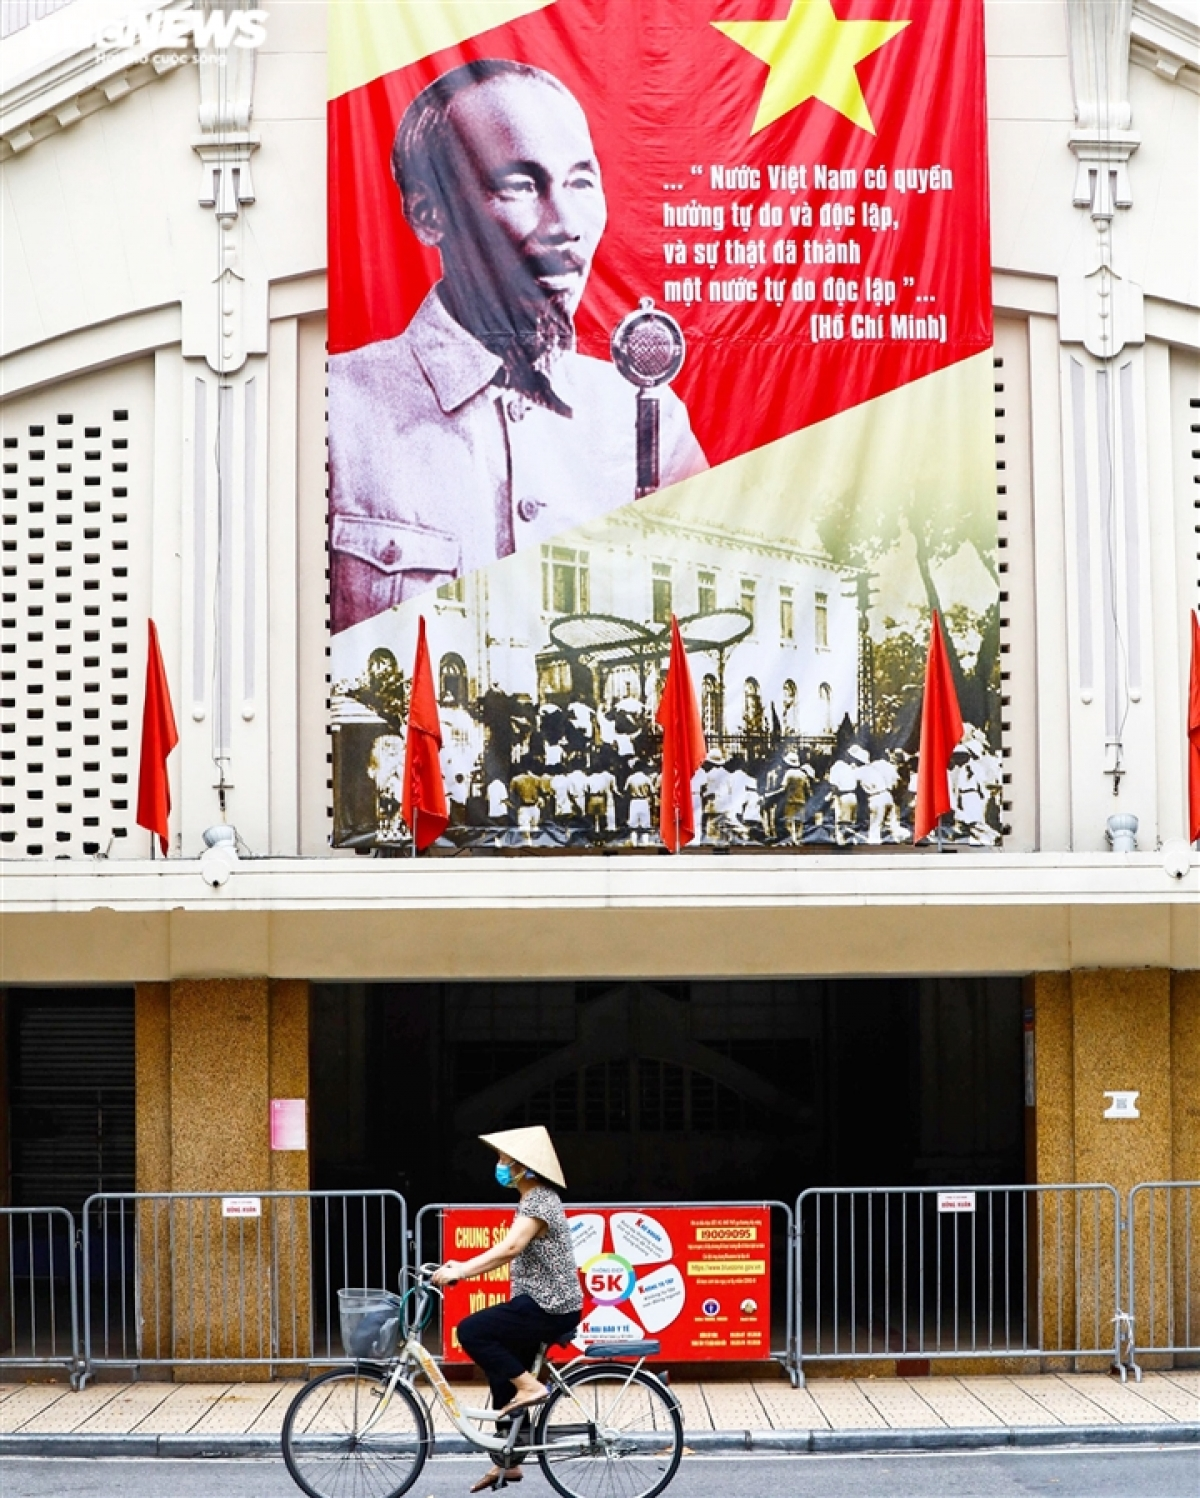 Large posters and billboards to mark the day are on show at Dong Xuan market